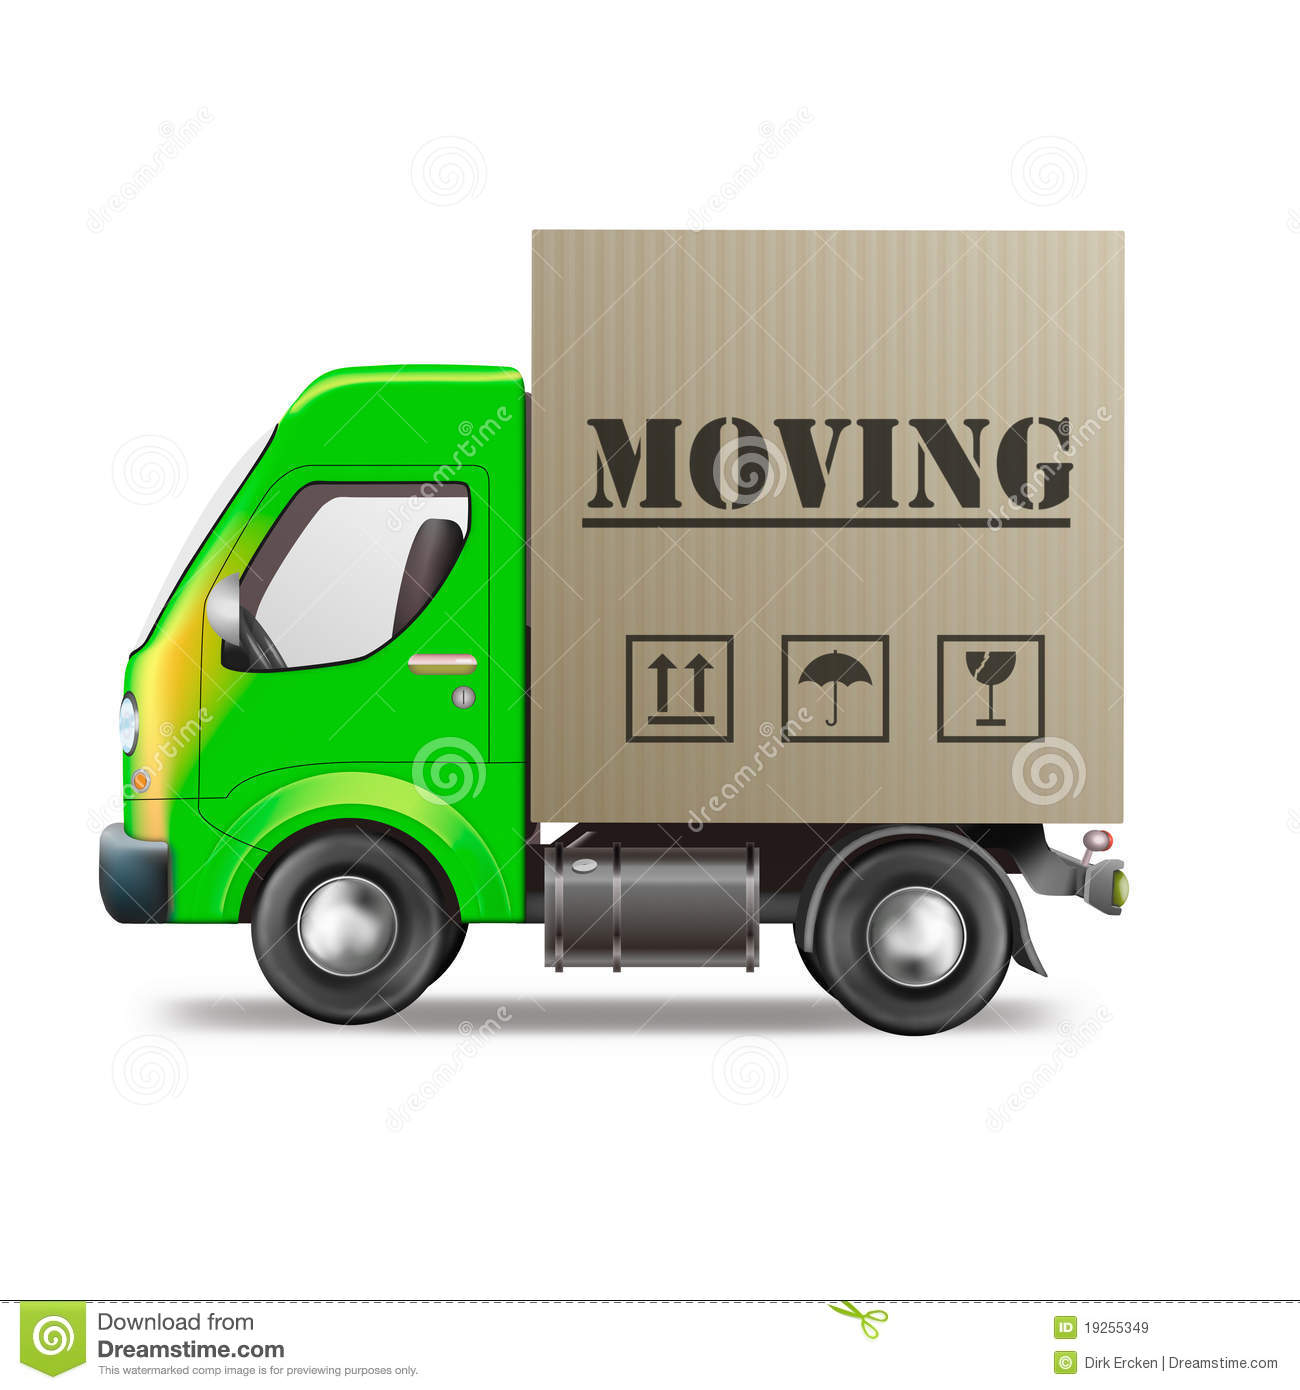 Moving truck house relocation van